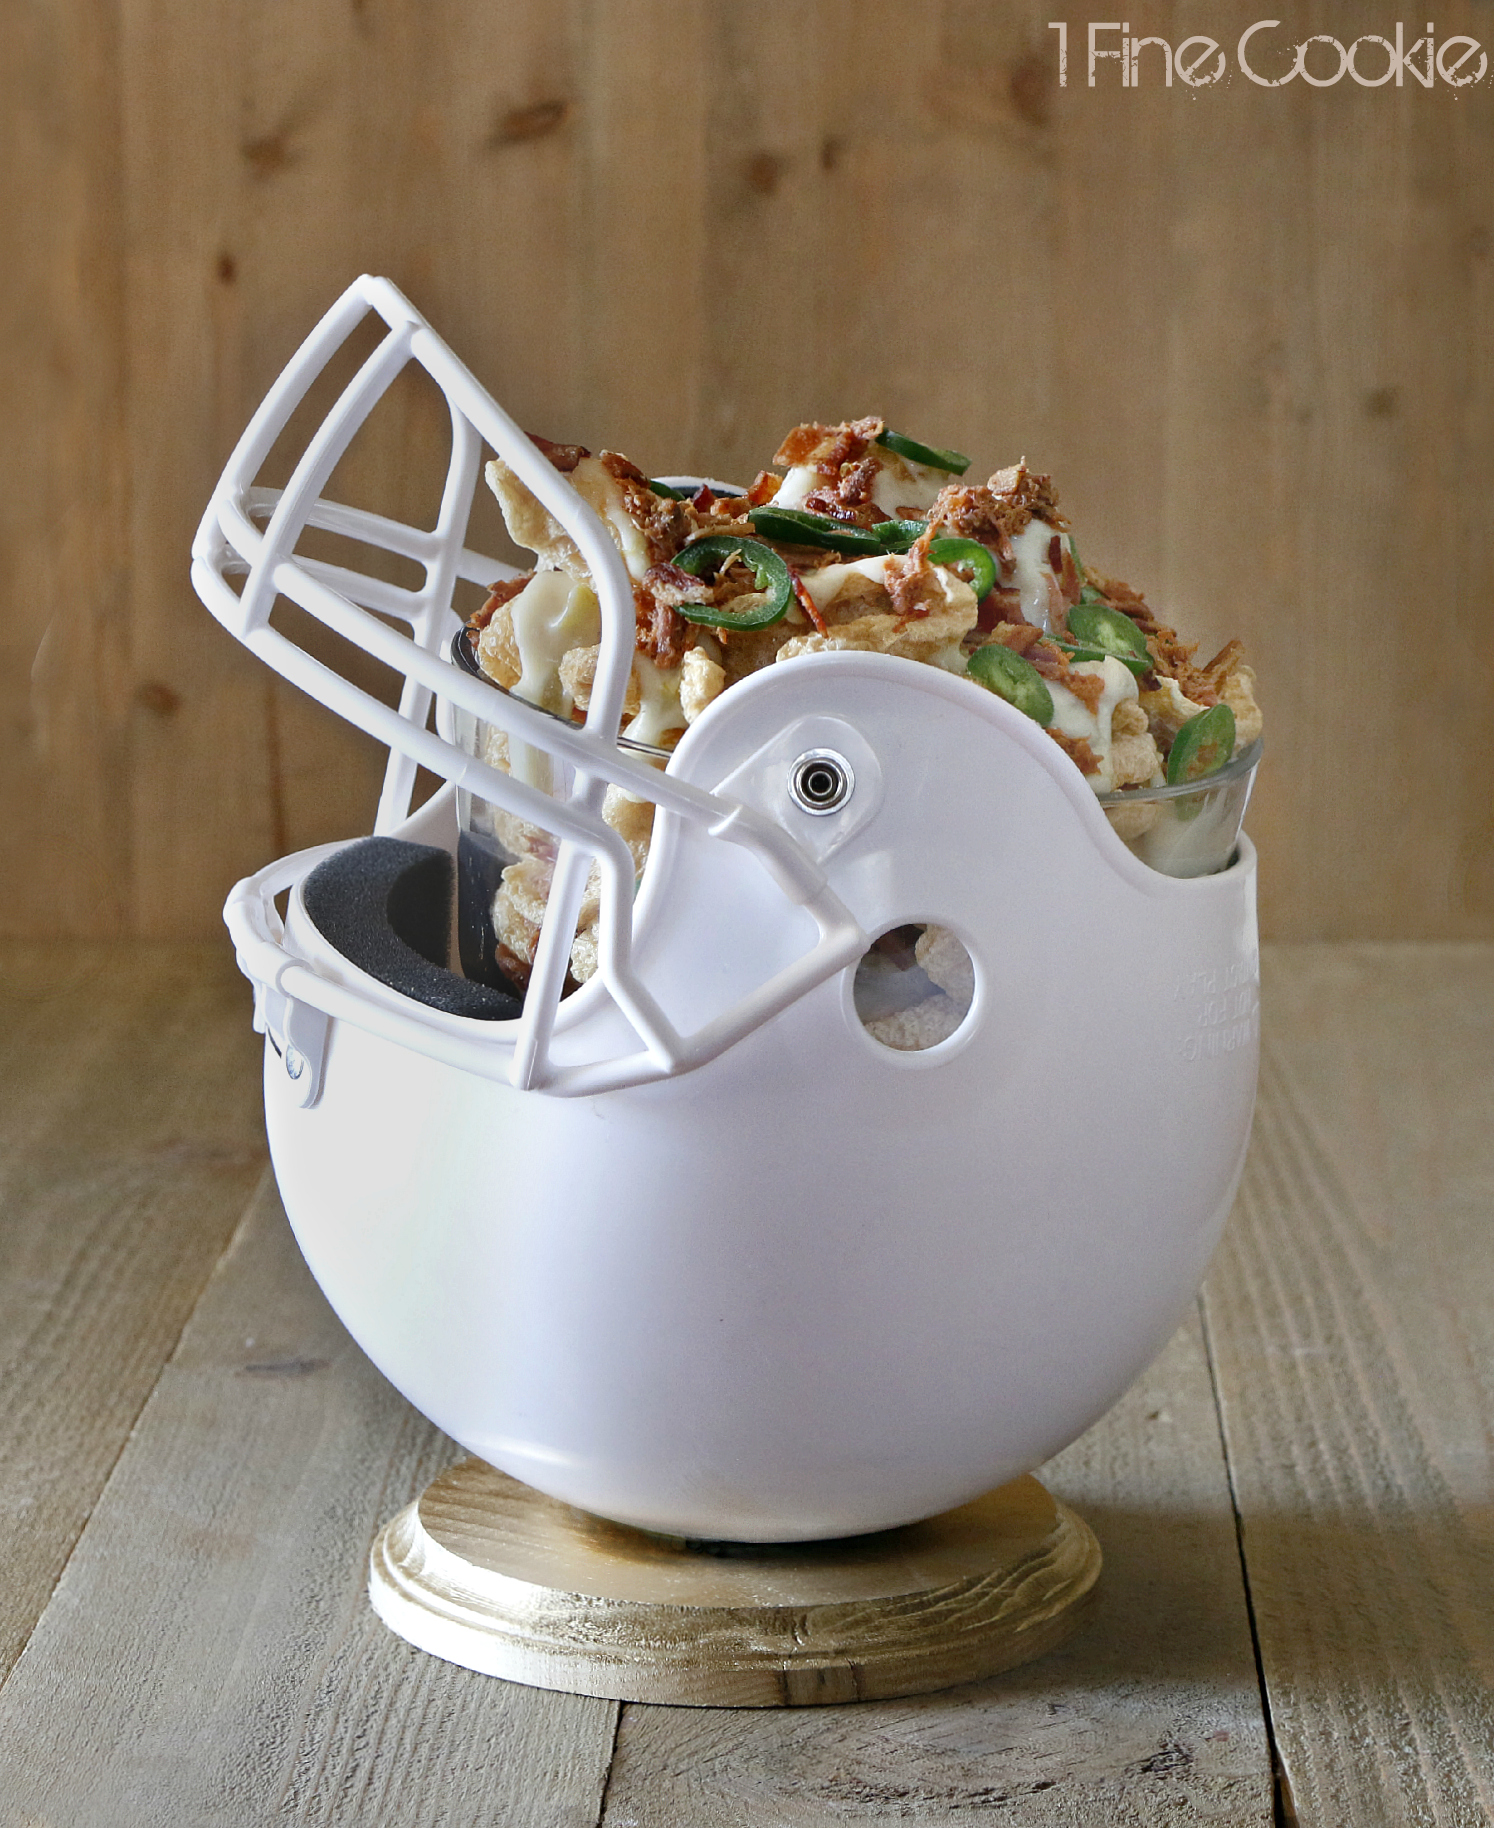 Ice Bowl Football Football Helmet Snack Bowl